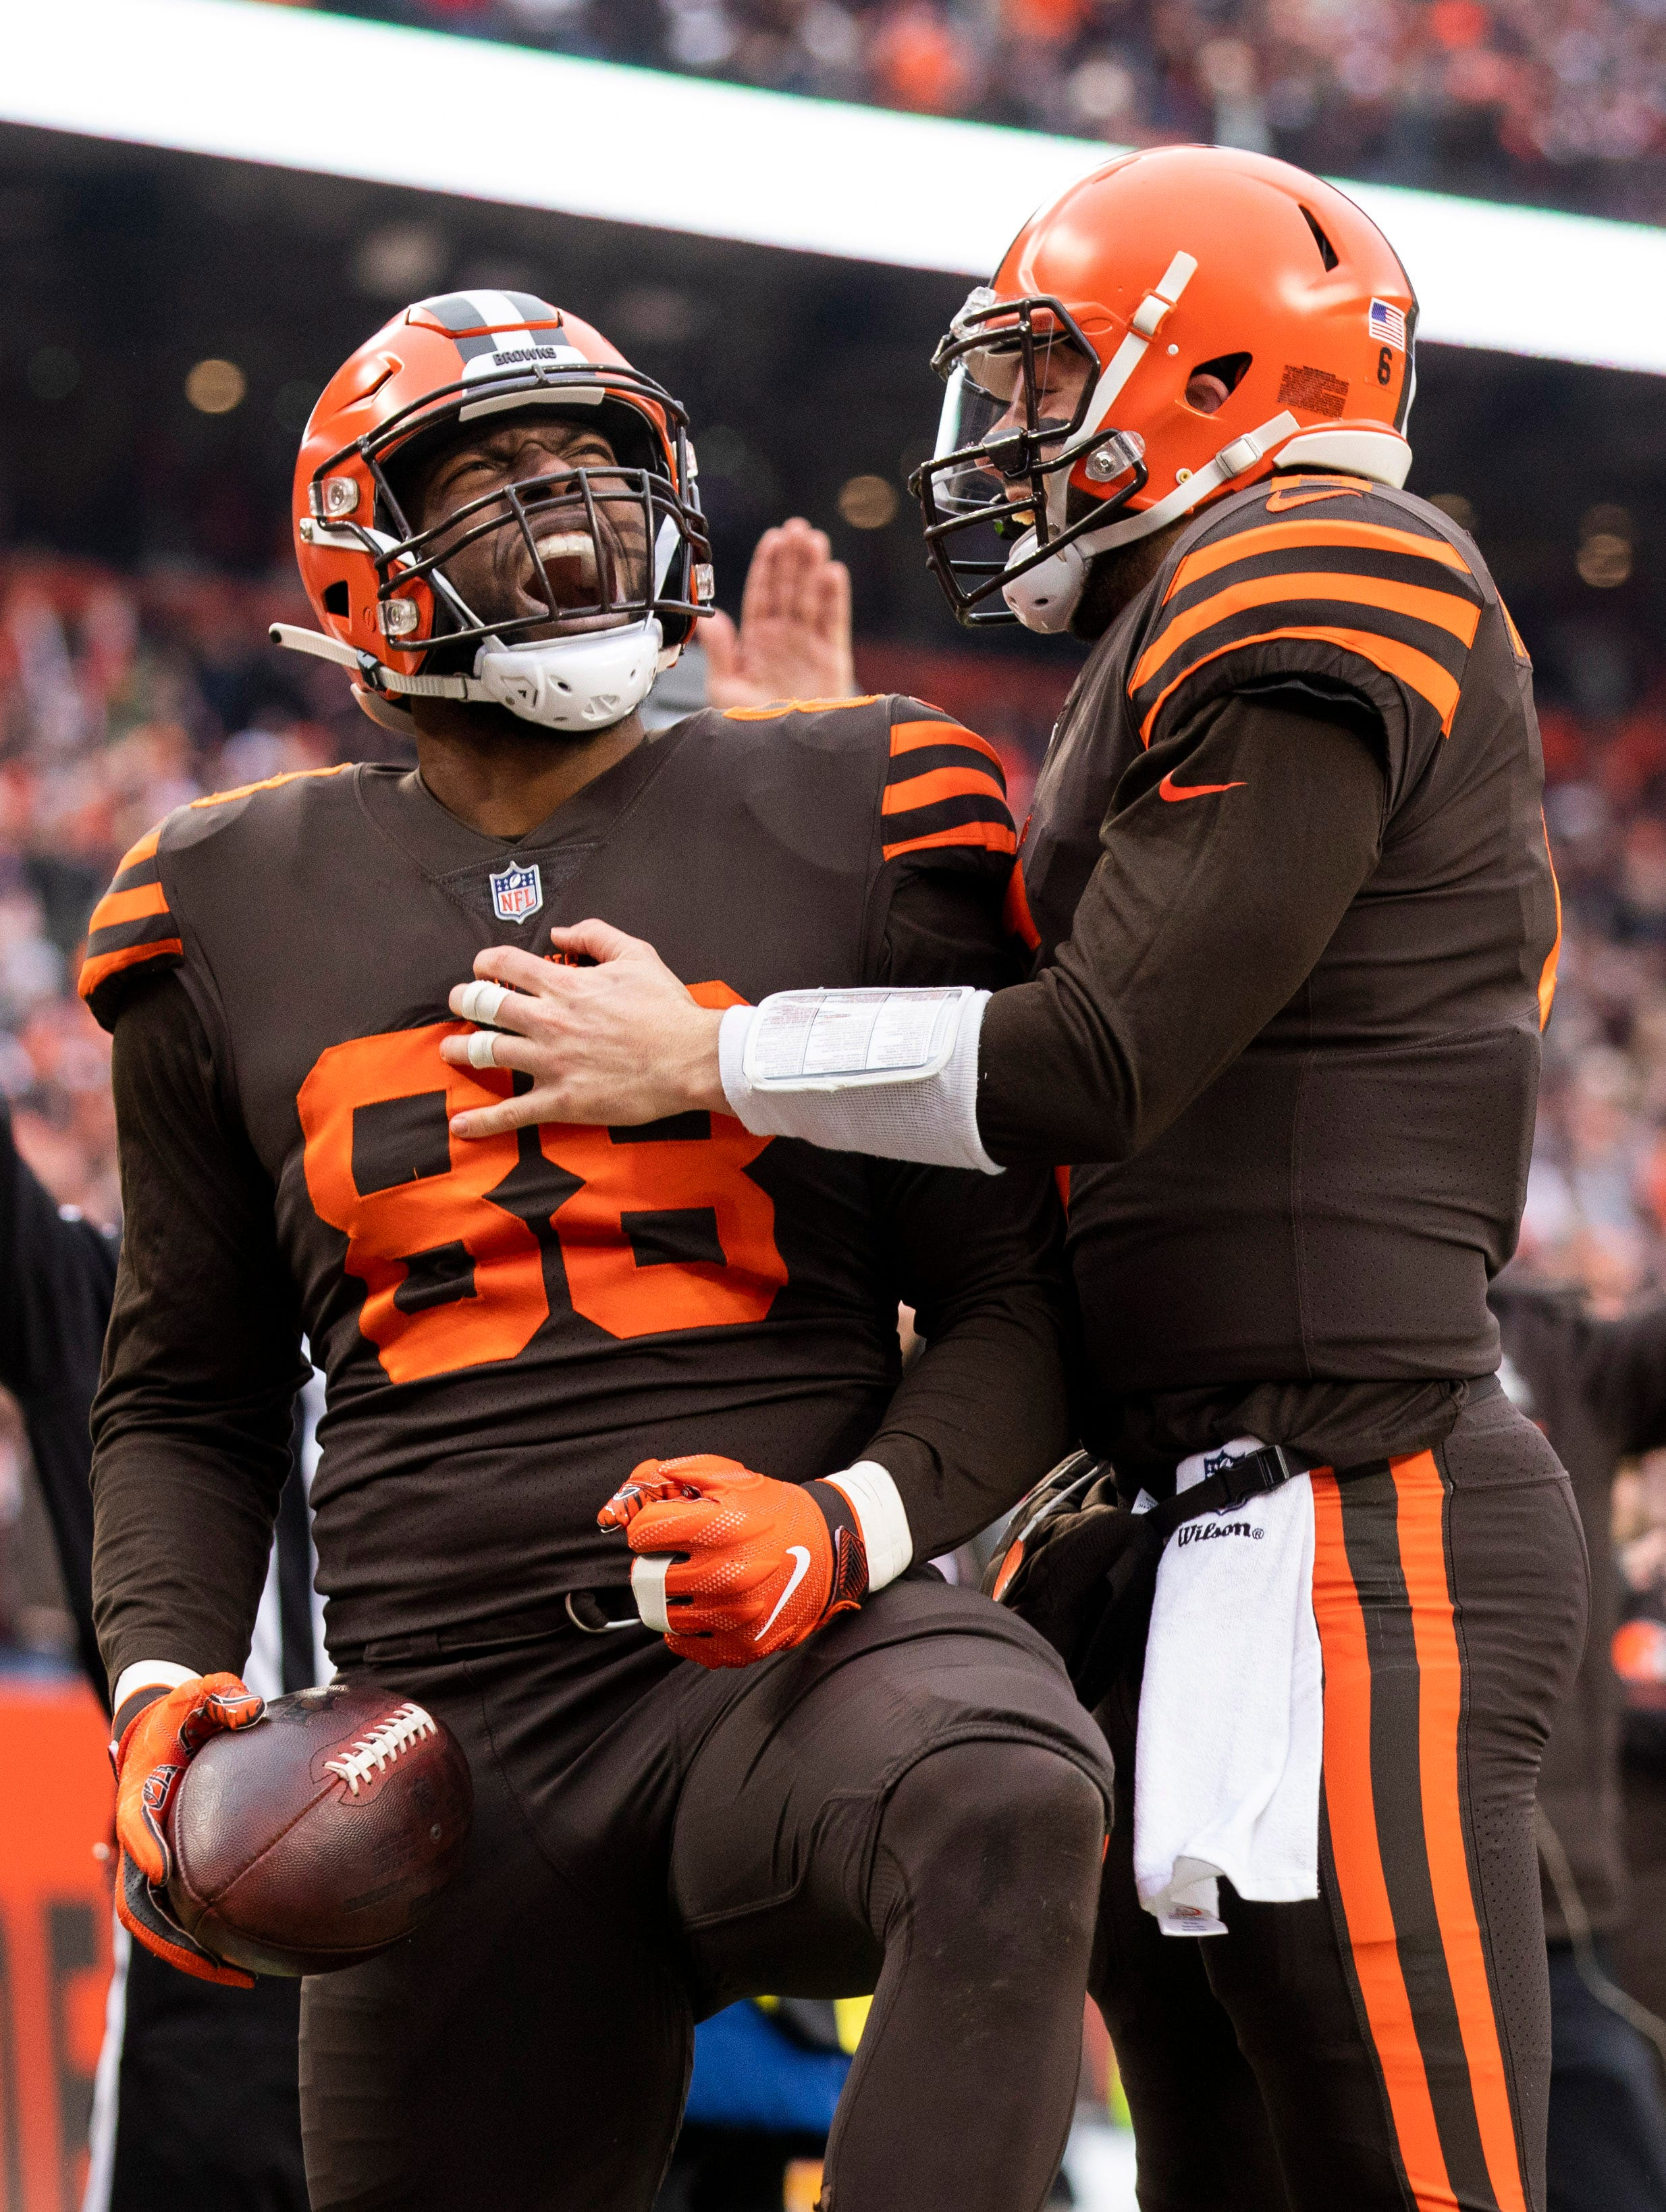 Cleveland Browns make Color Rush jerseys their primary uniform after petitioning NFL thumbnail